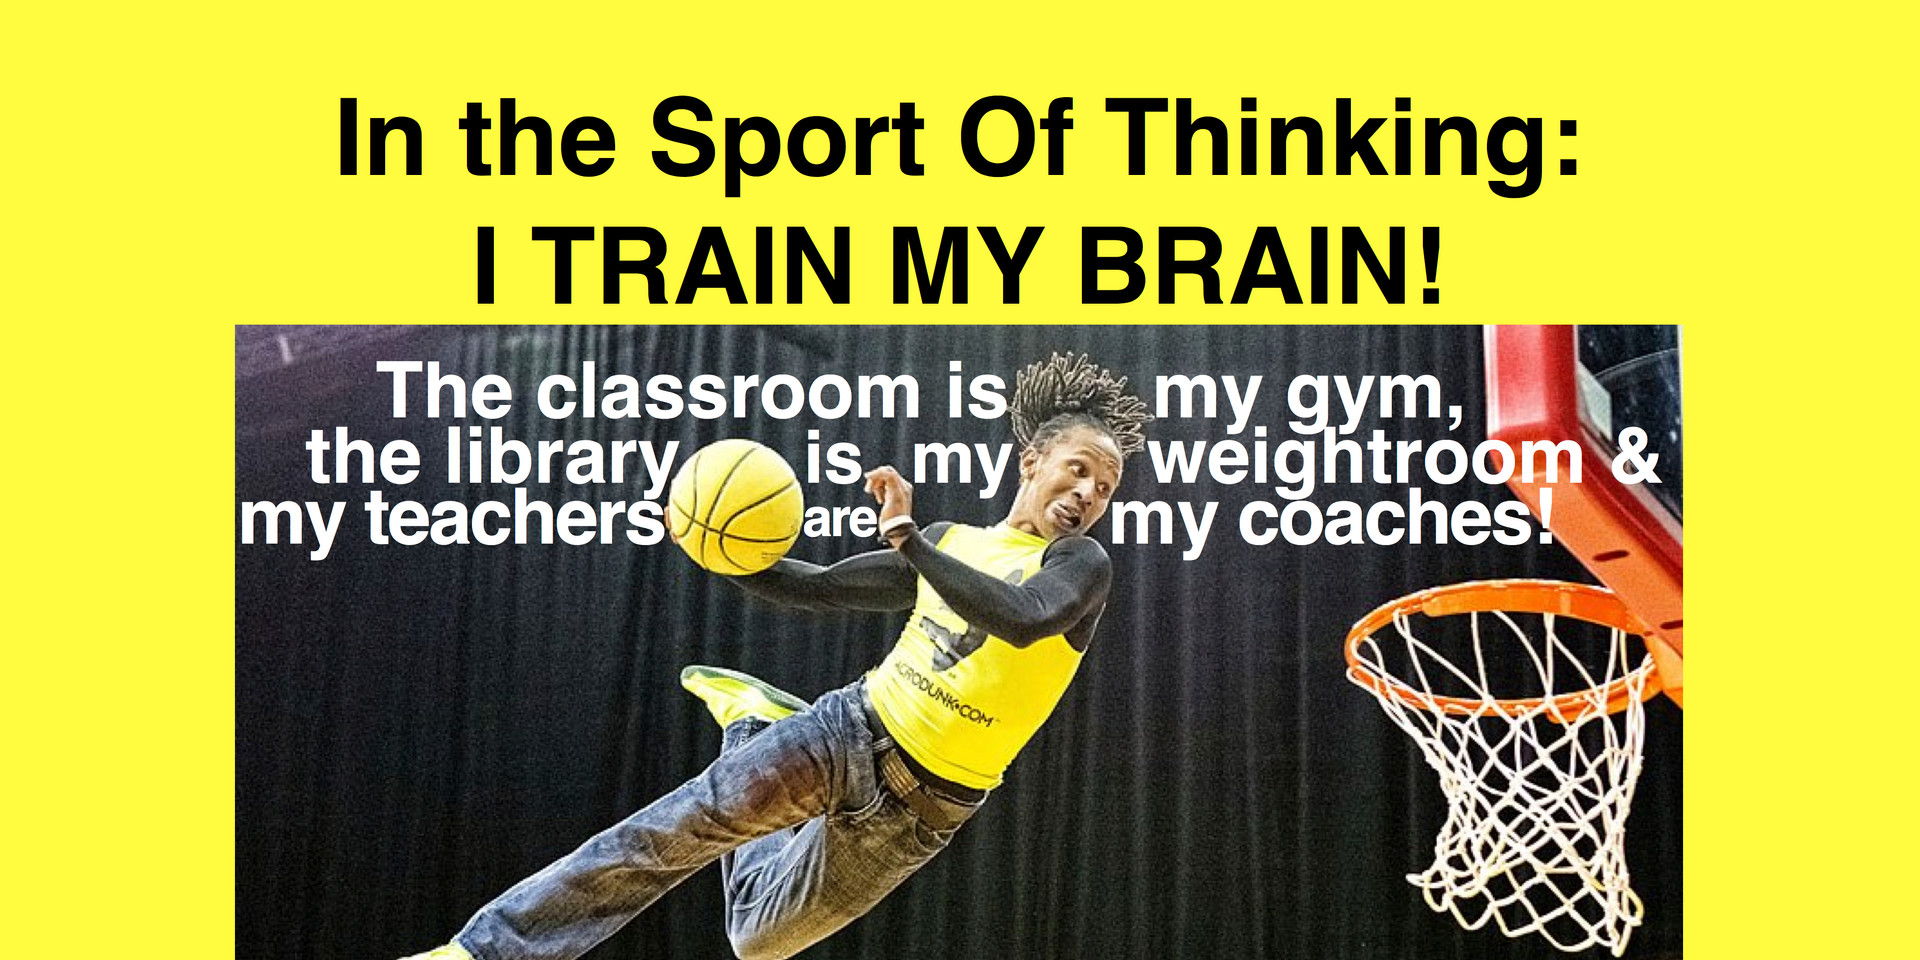 Classroom is my gym!